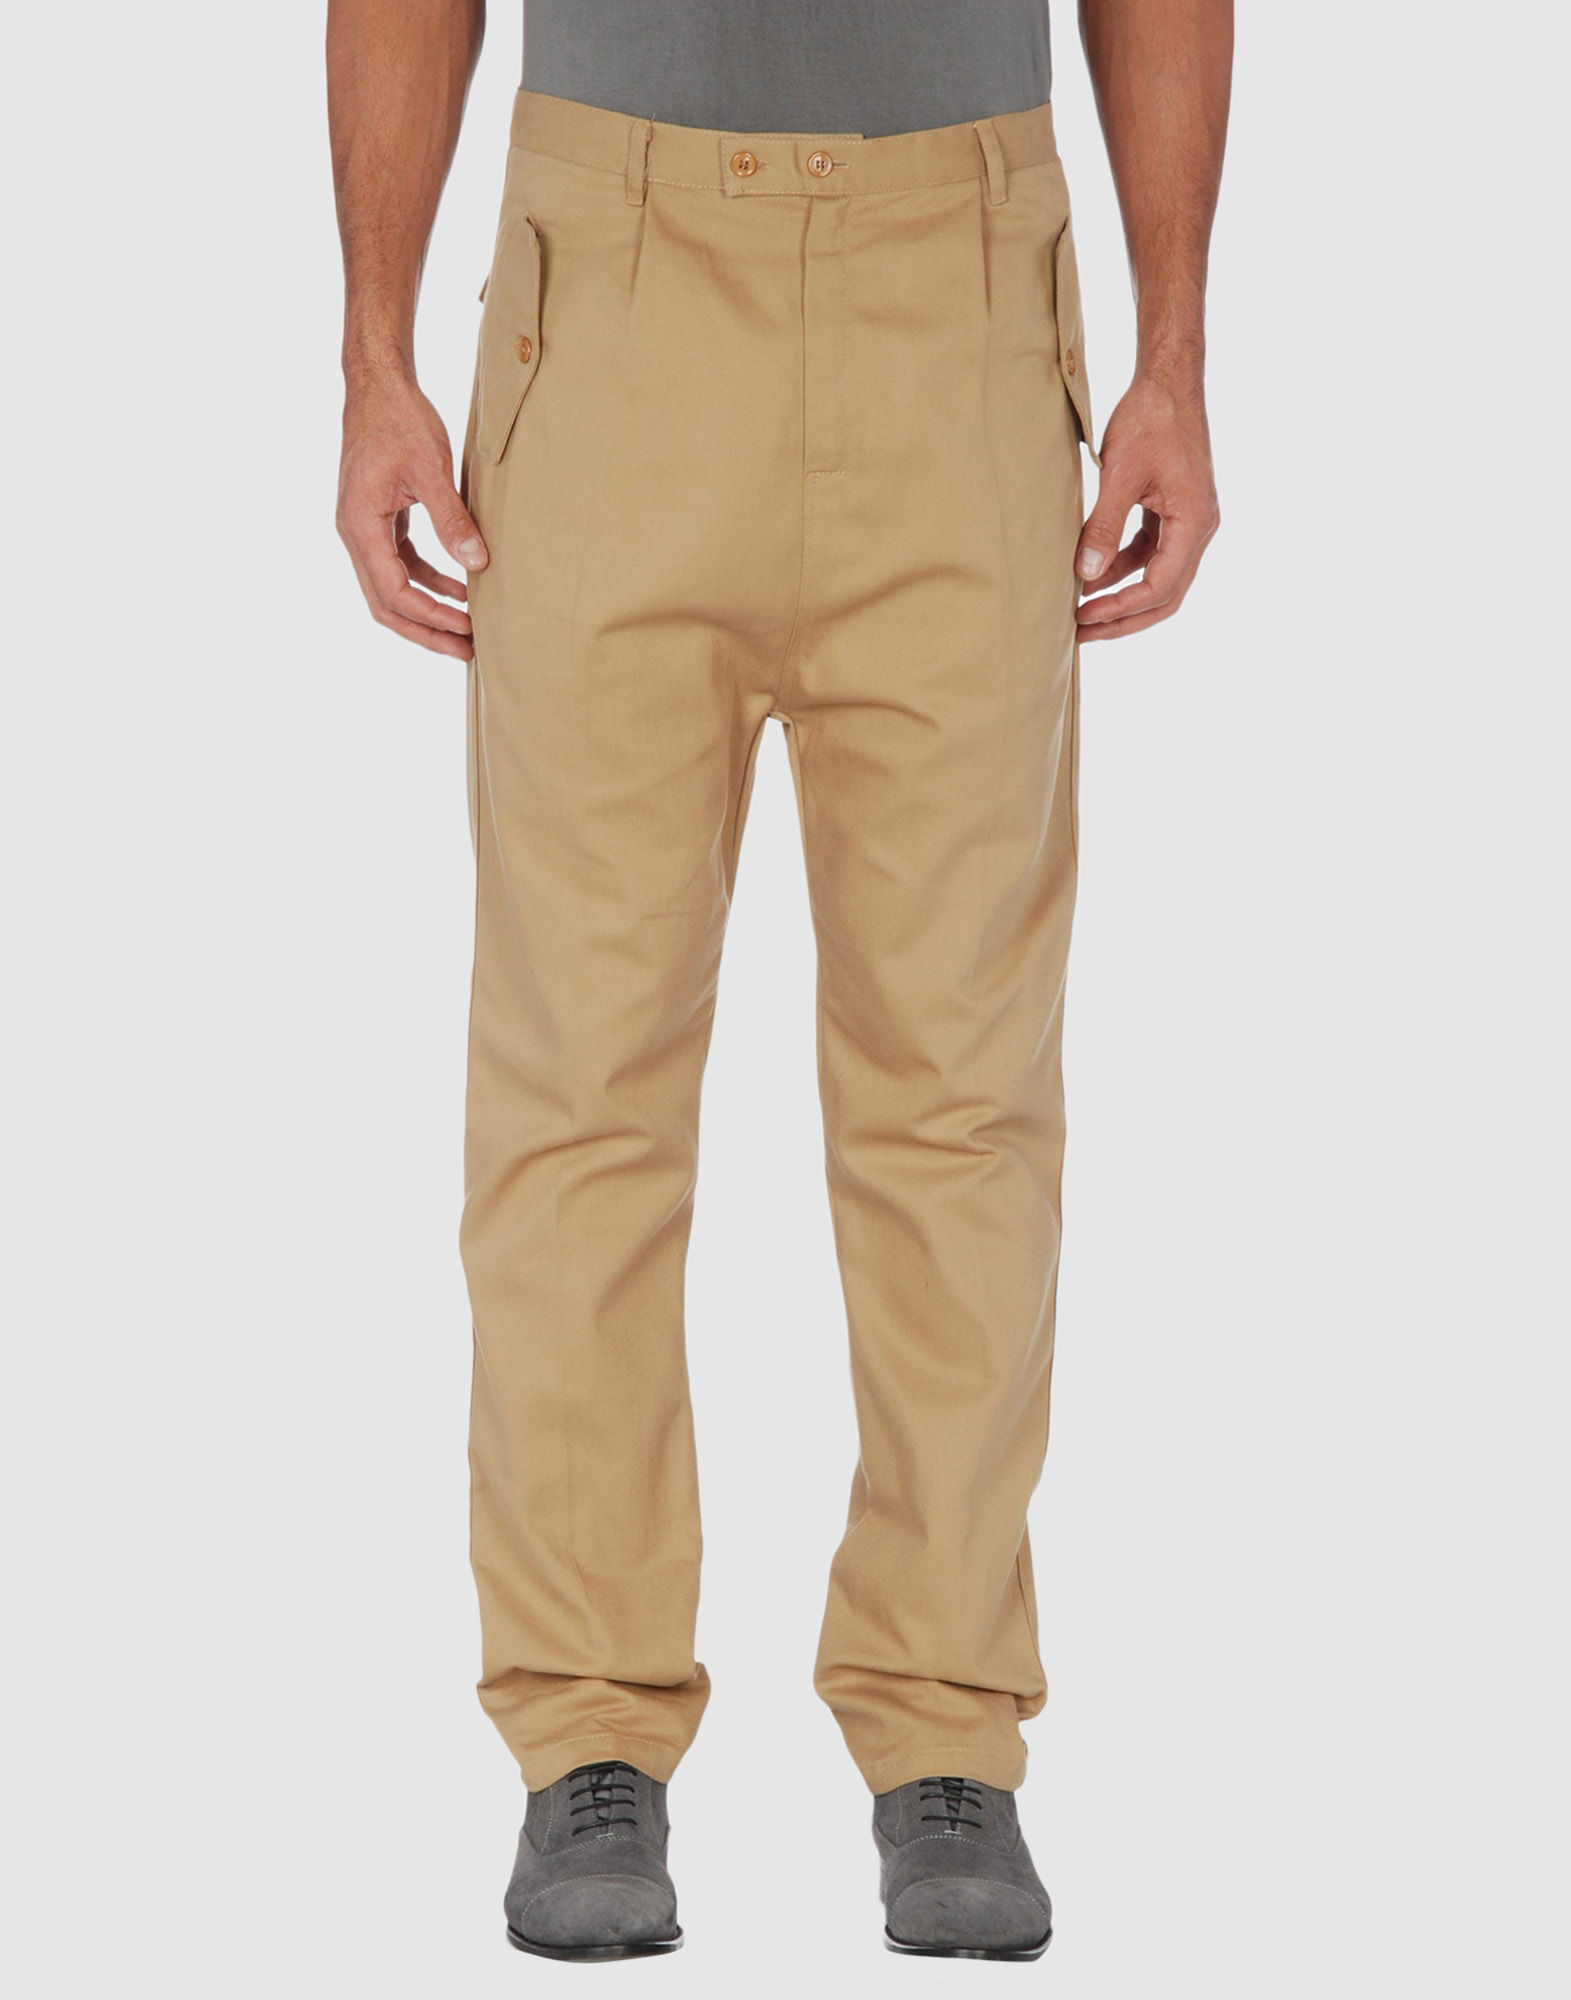 Dress Pants: Free Shipping on orders over $45 at venchik.ml - Your Online Dress Pants Store! Get 5% in rewards with Club O!